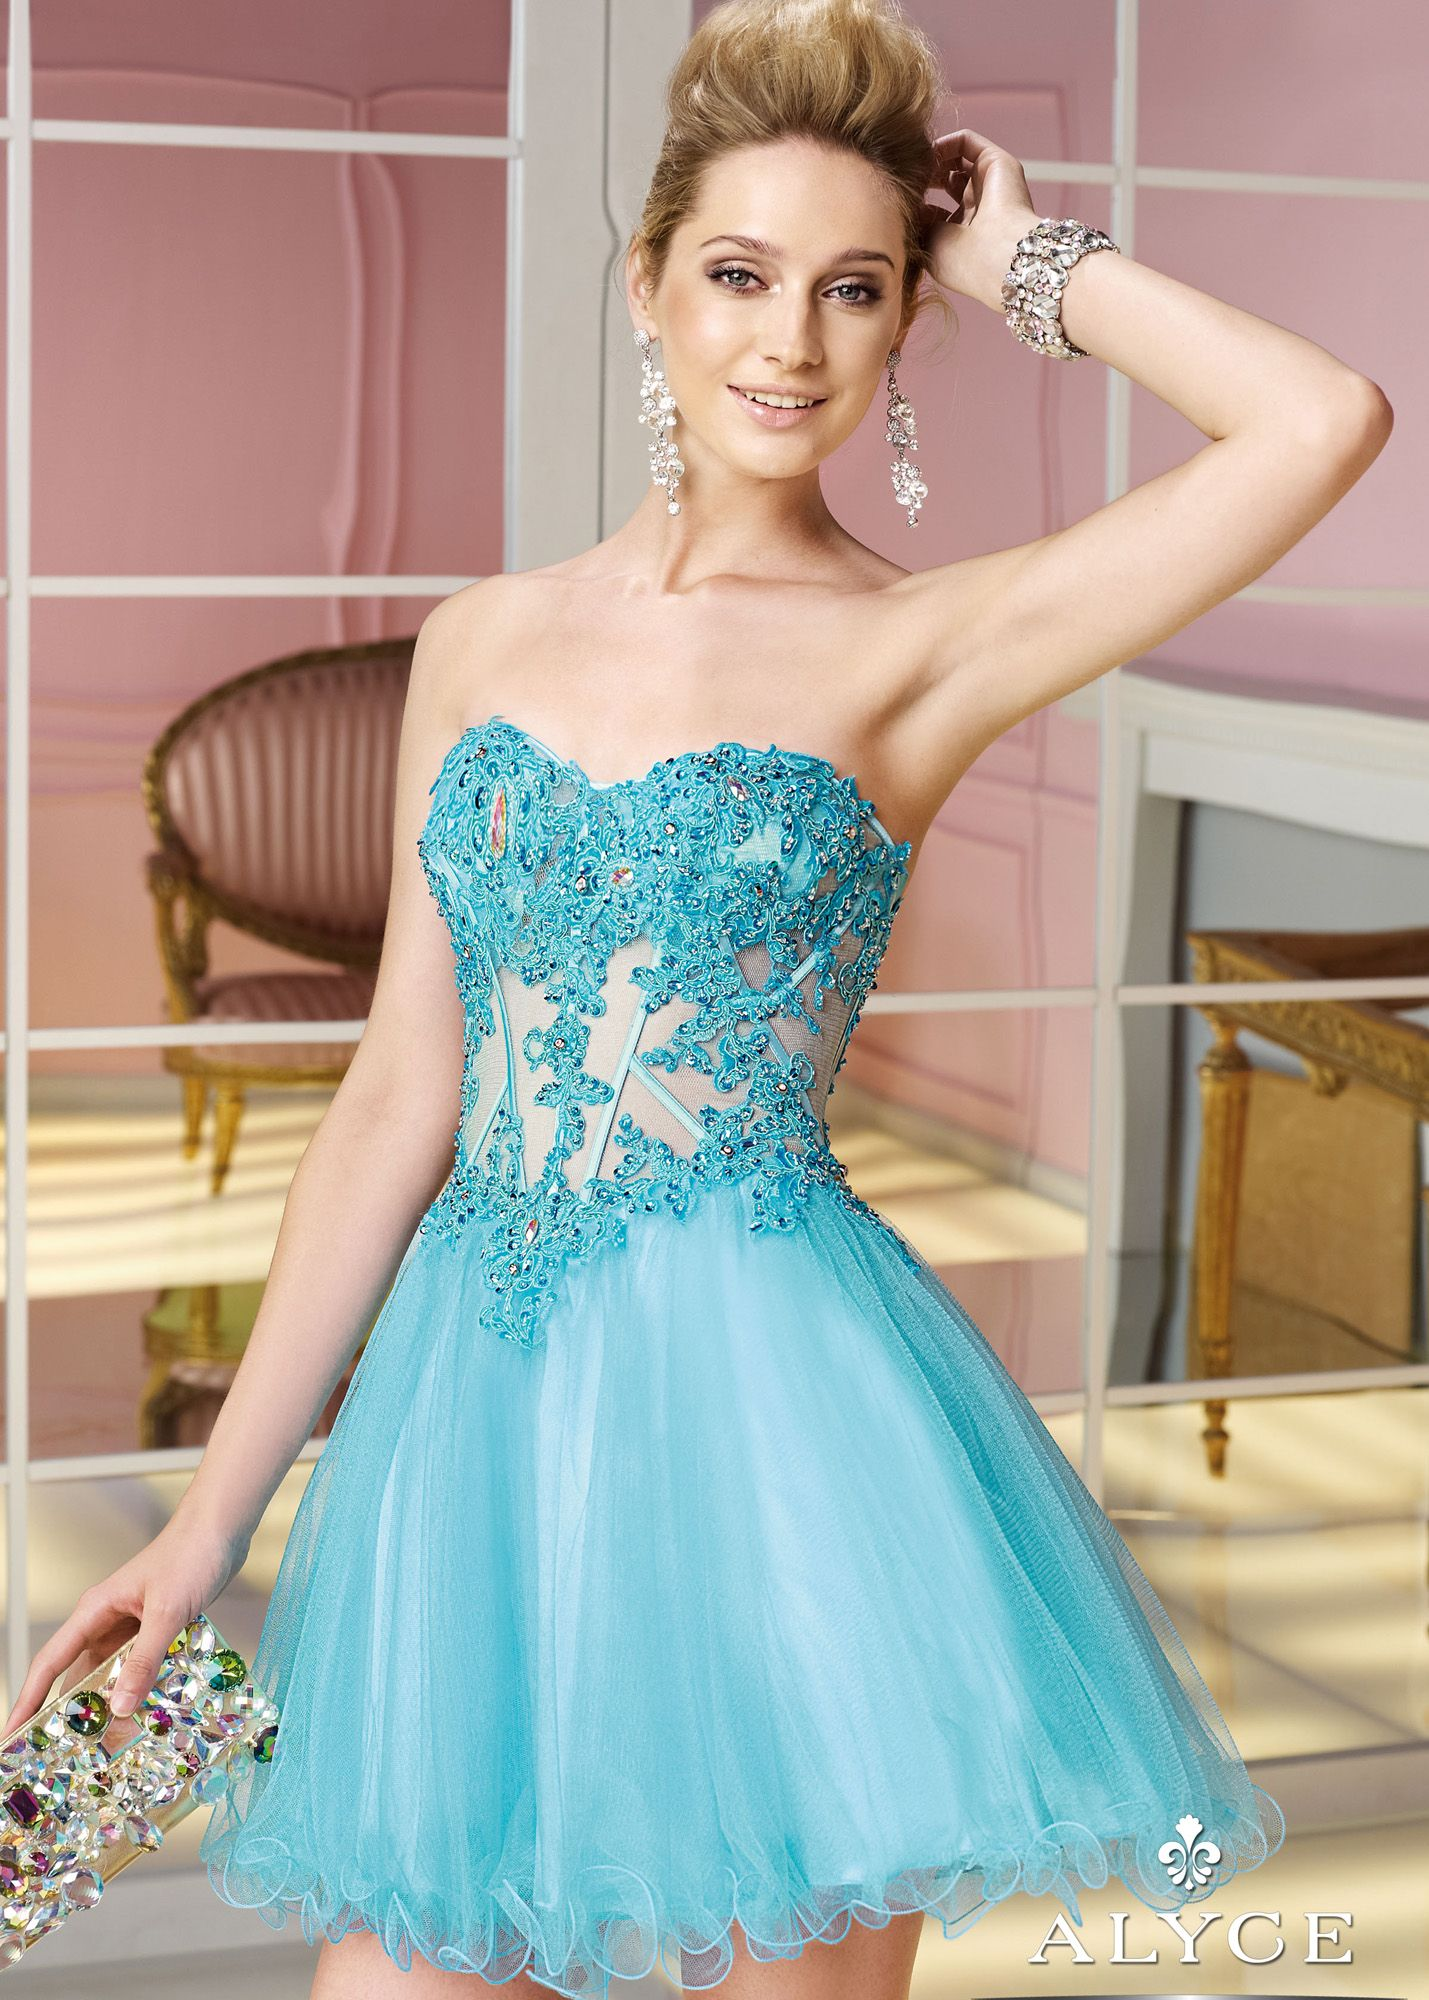 Alyce Paris 3582 - Turquoise Strapless Sweetheart Lace Sweet 16 ...